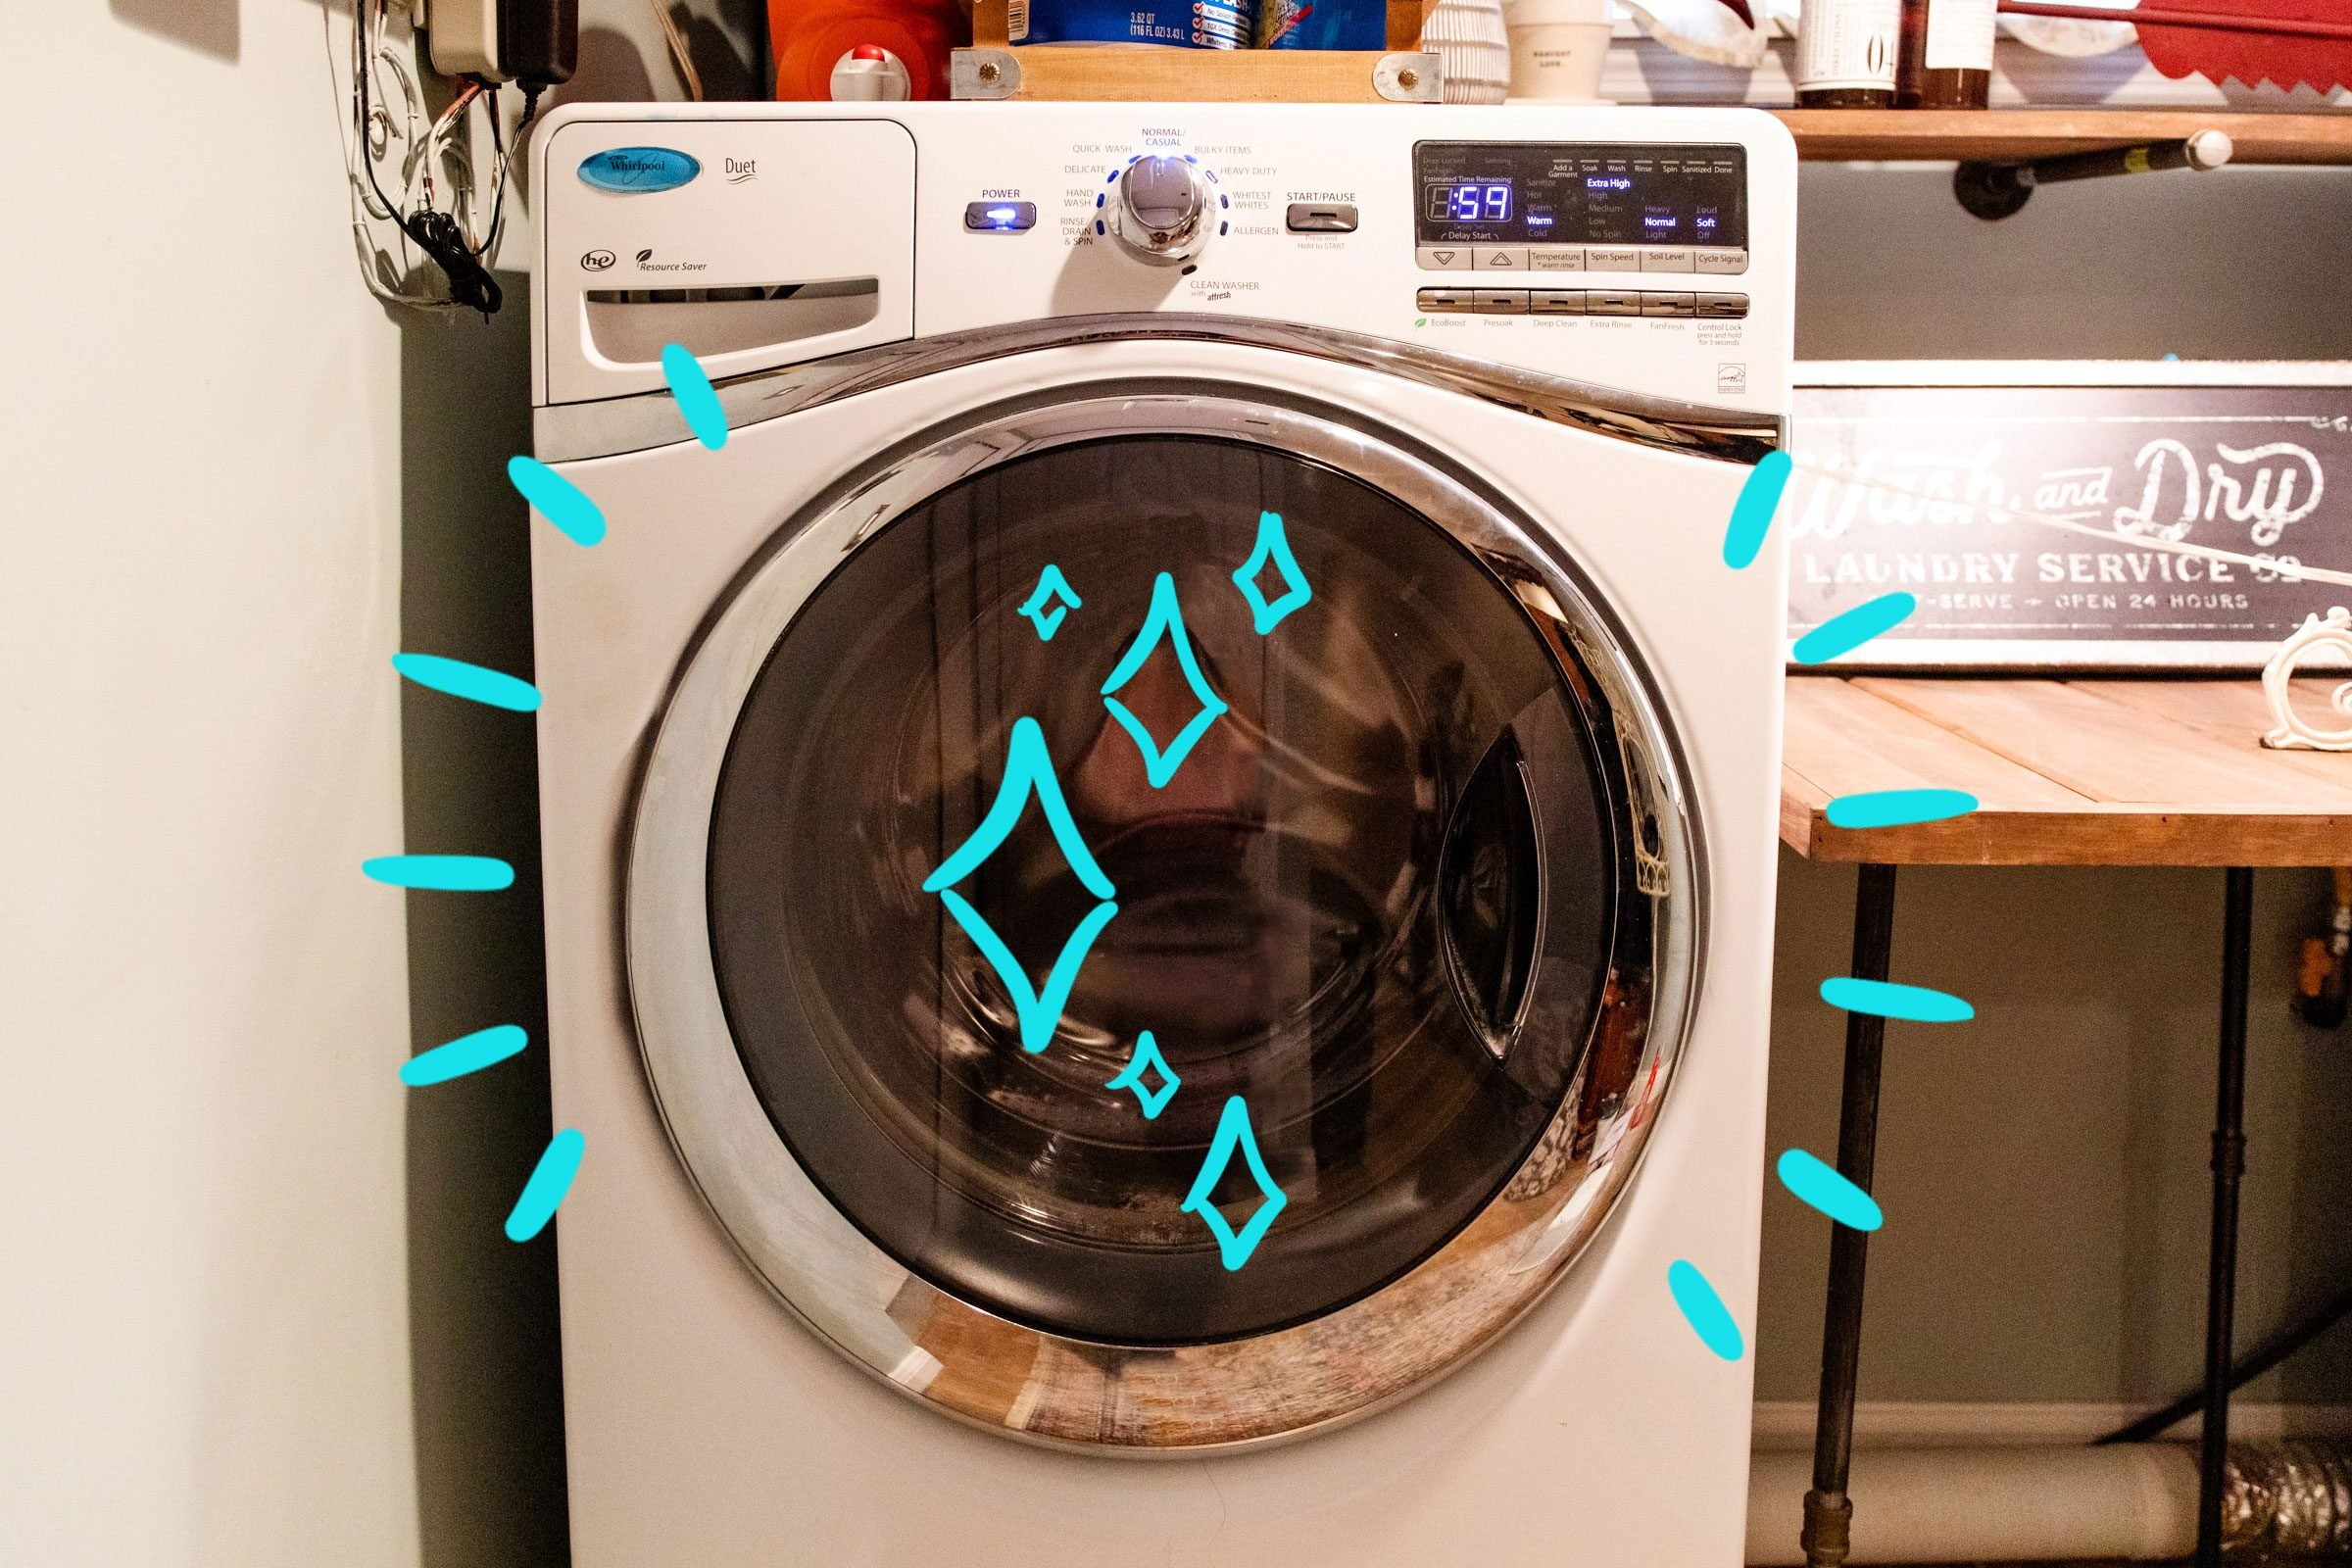 A washing machine door with sparkles, emanating wiggly lines to symbolize cleanliness